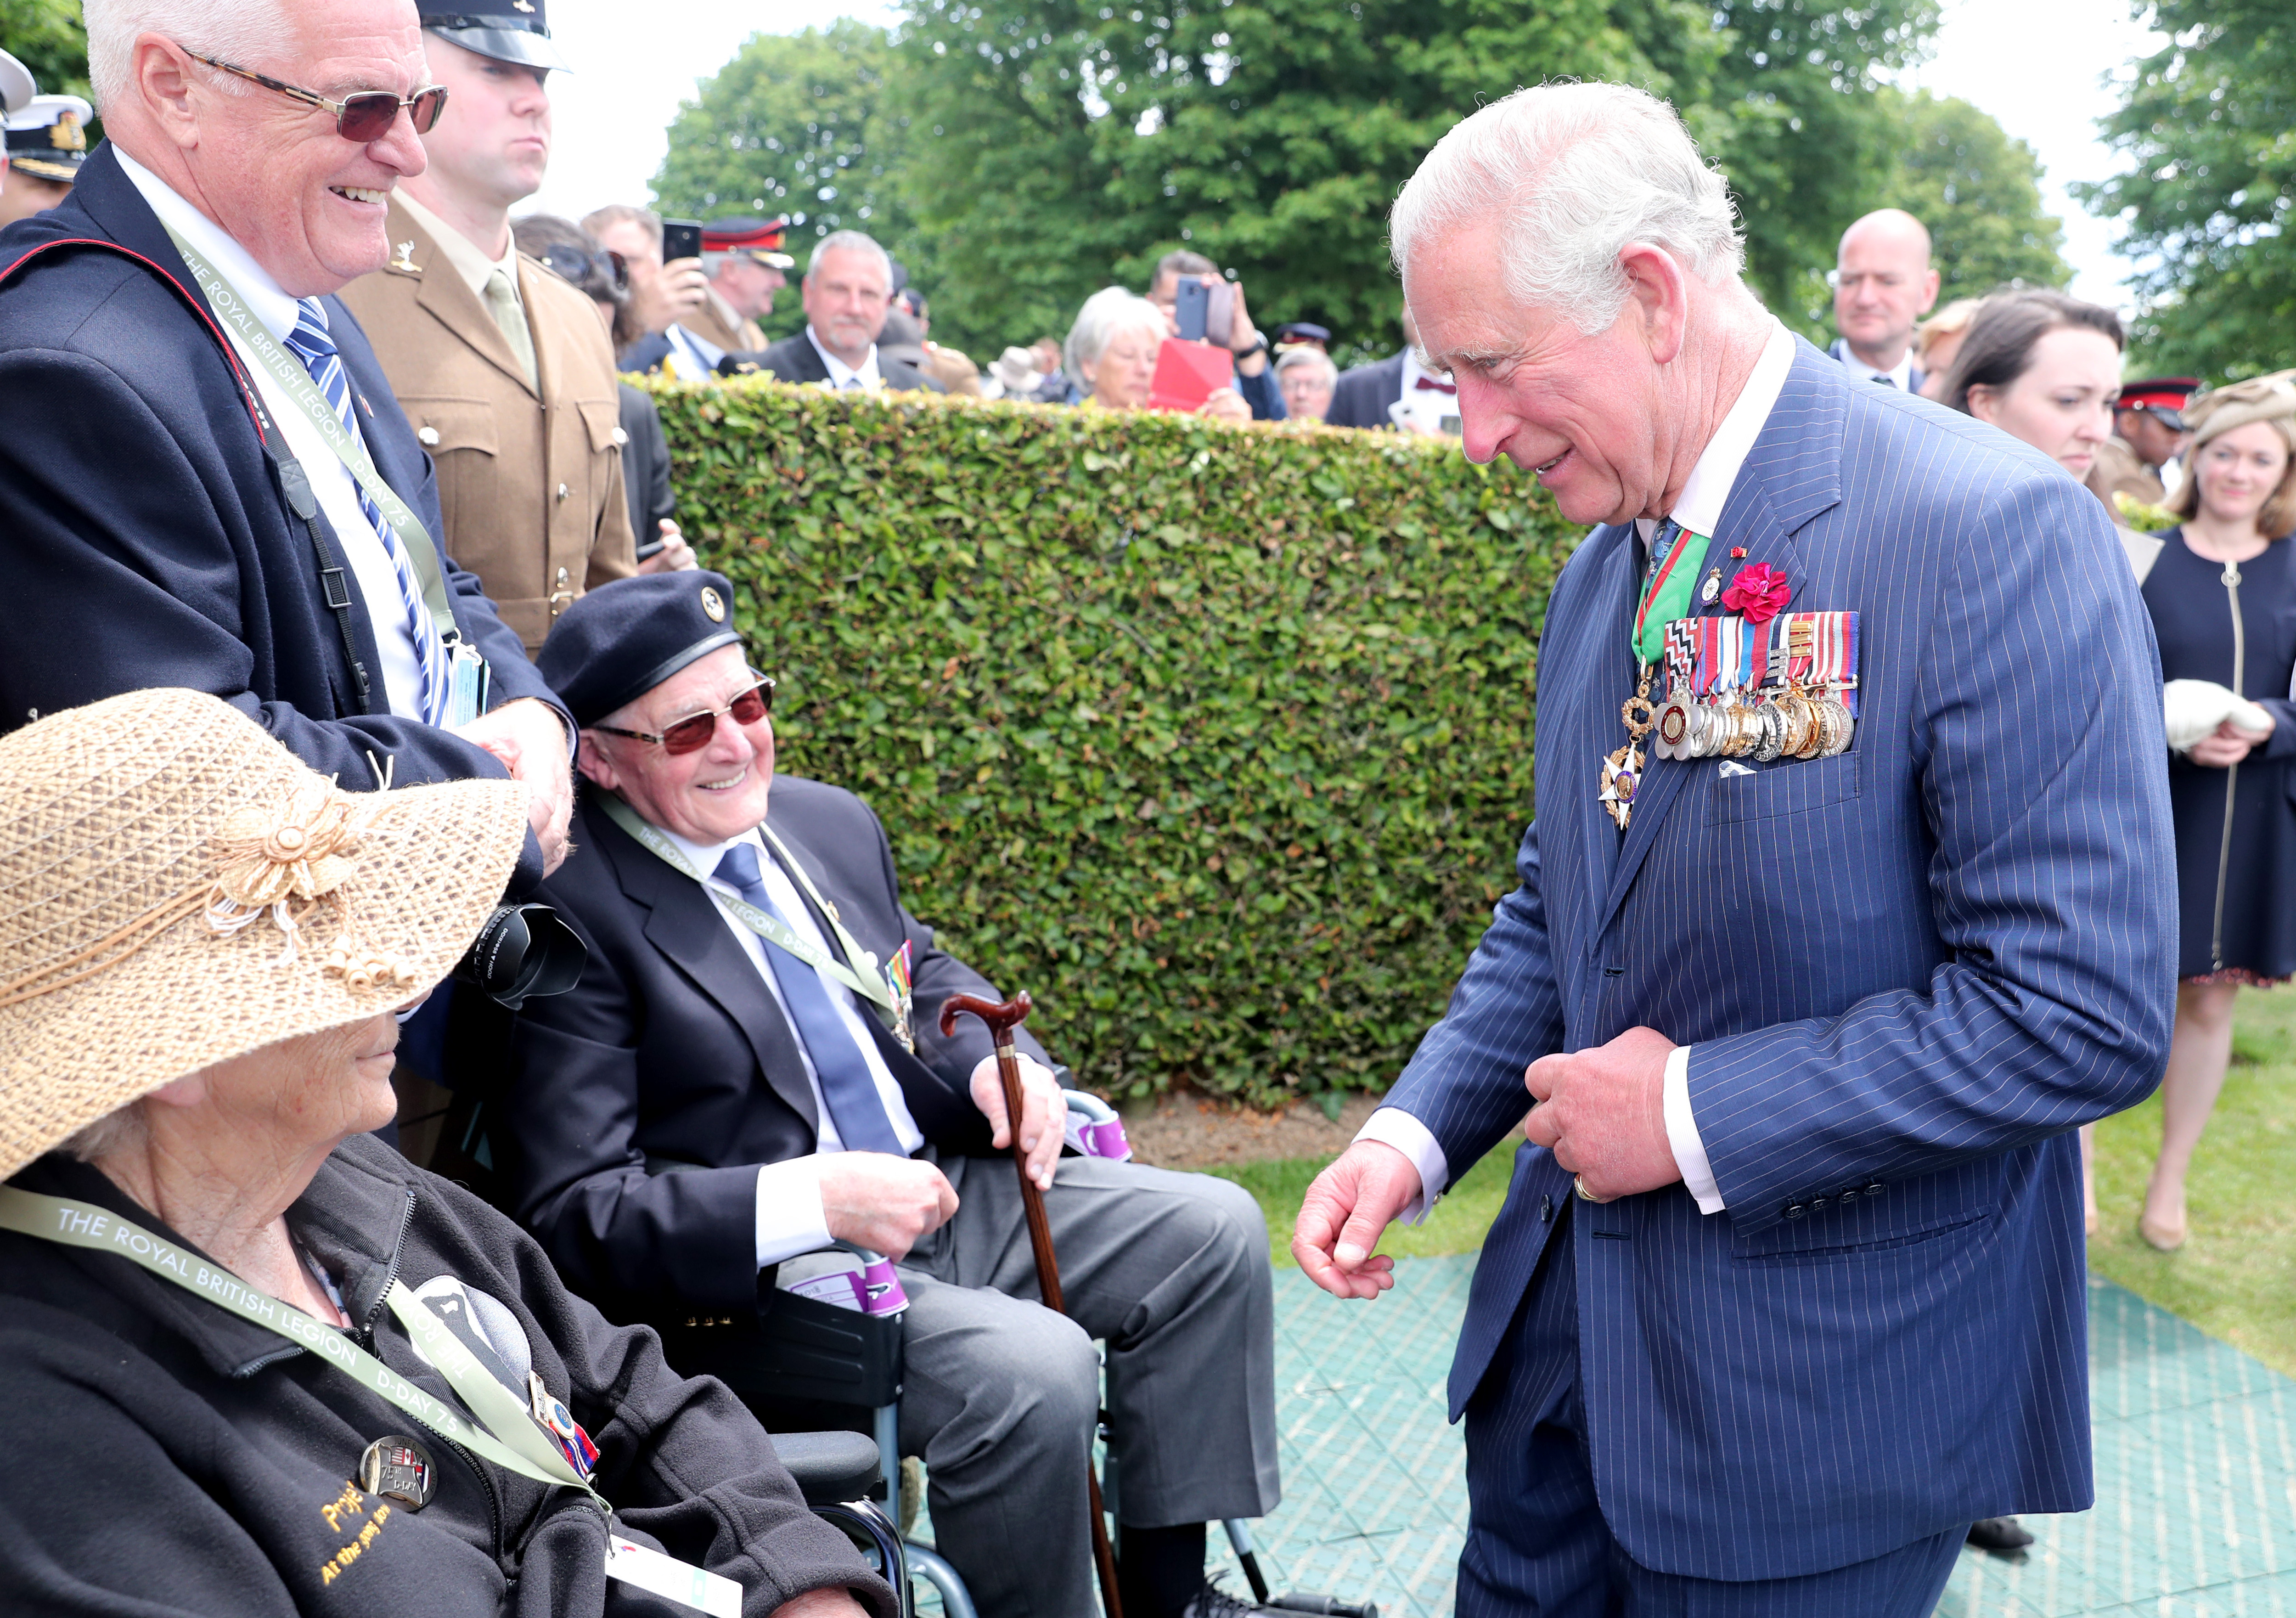 The 75th anniversary of the D-Day landings | The Royal Family